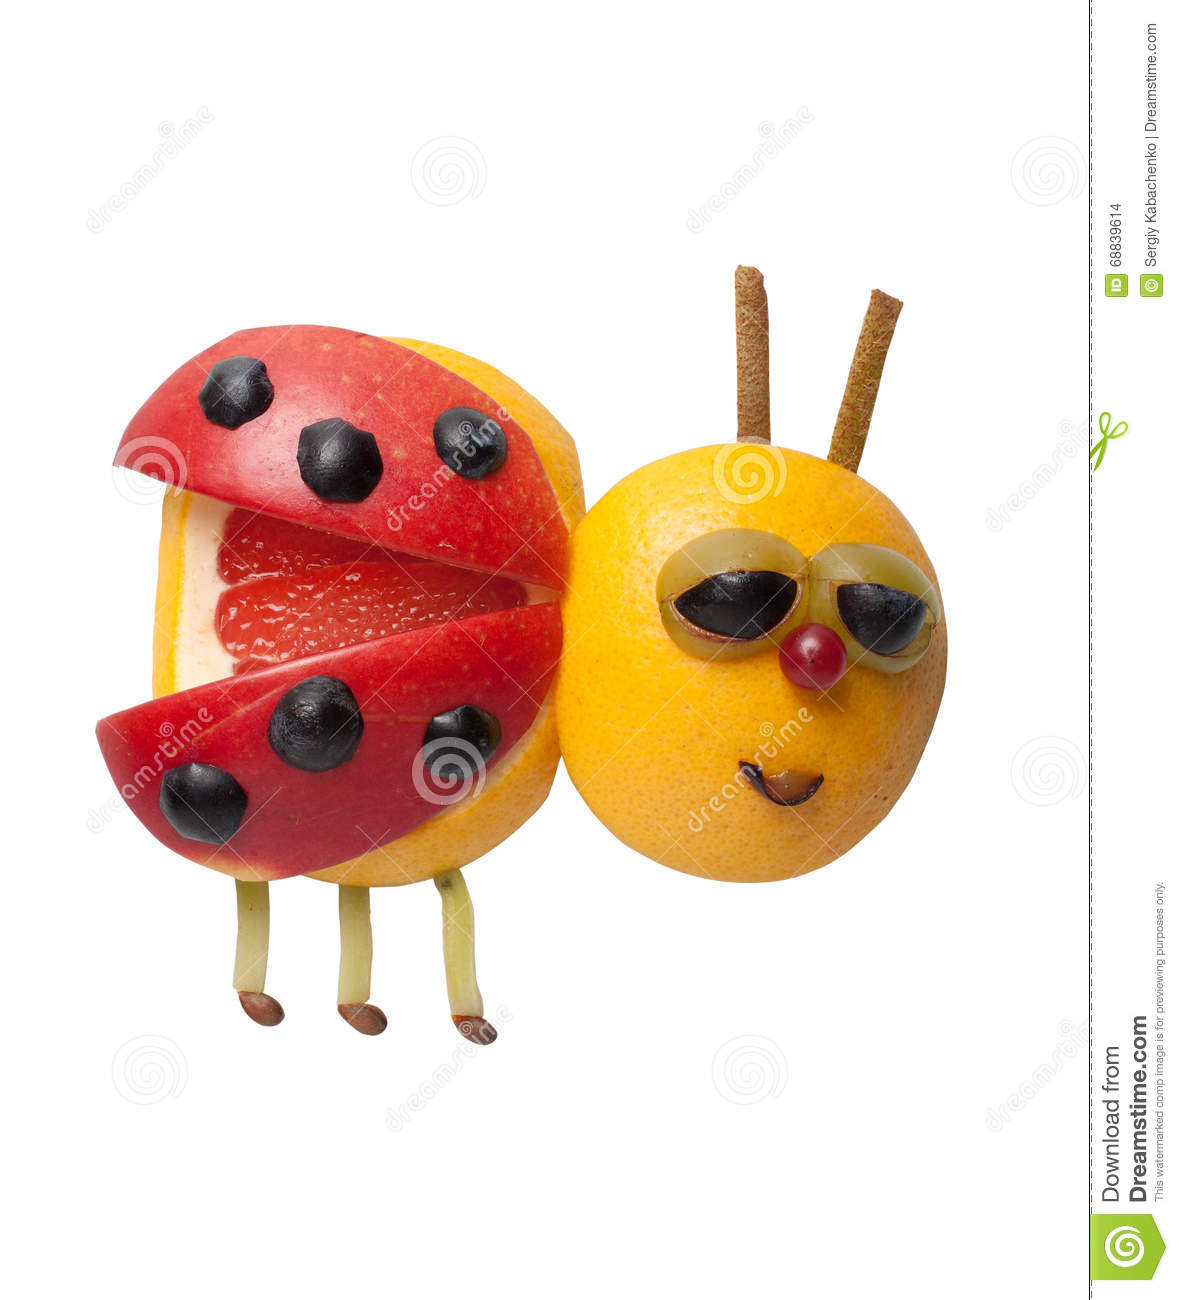 Lady bird made of fruits